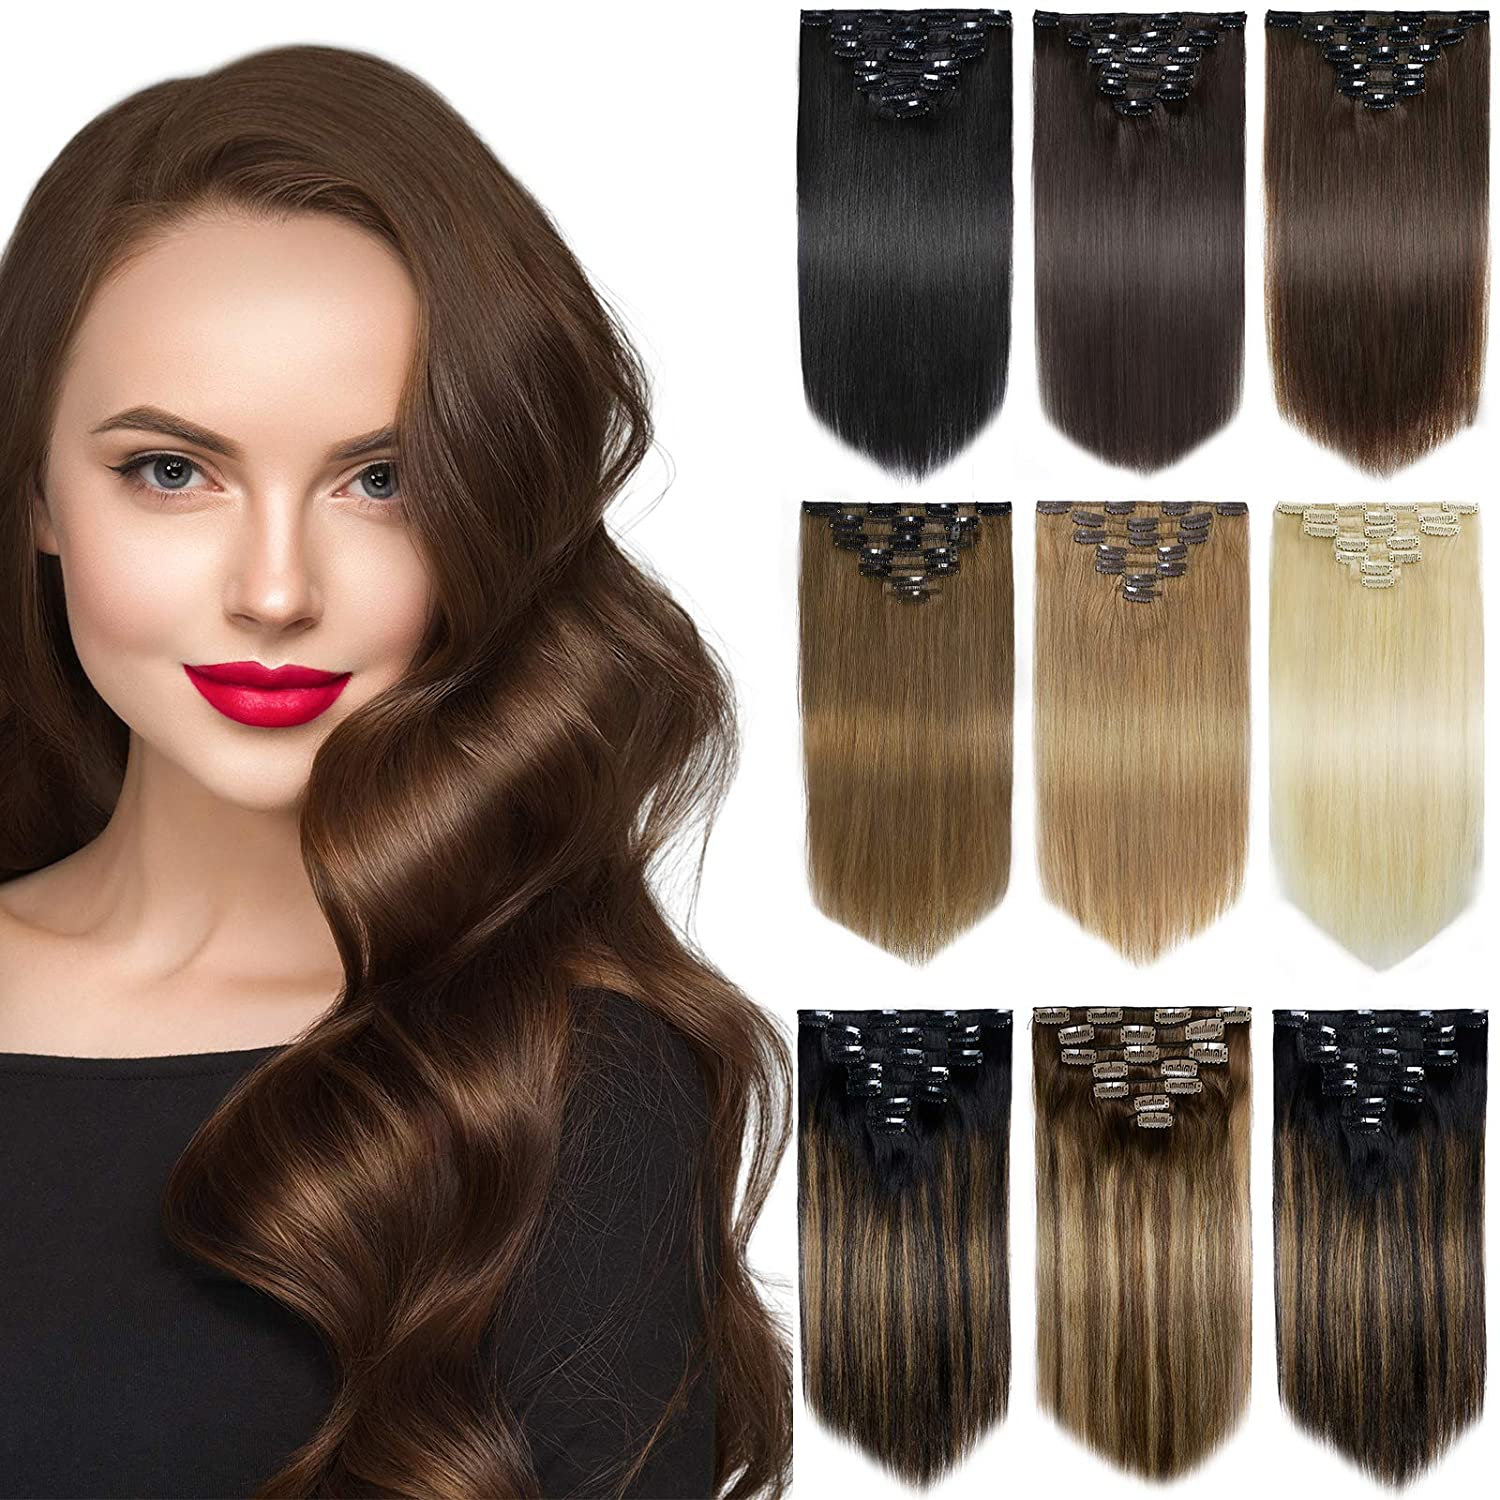 Yamel Remy Clip in Ranking TOP2 Hair Extensions 7Pcs 16 Manufacturer regenerated product Human Clips Real